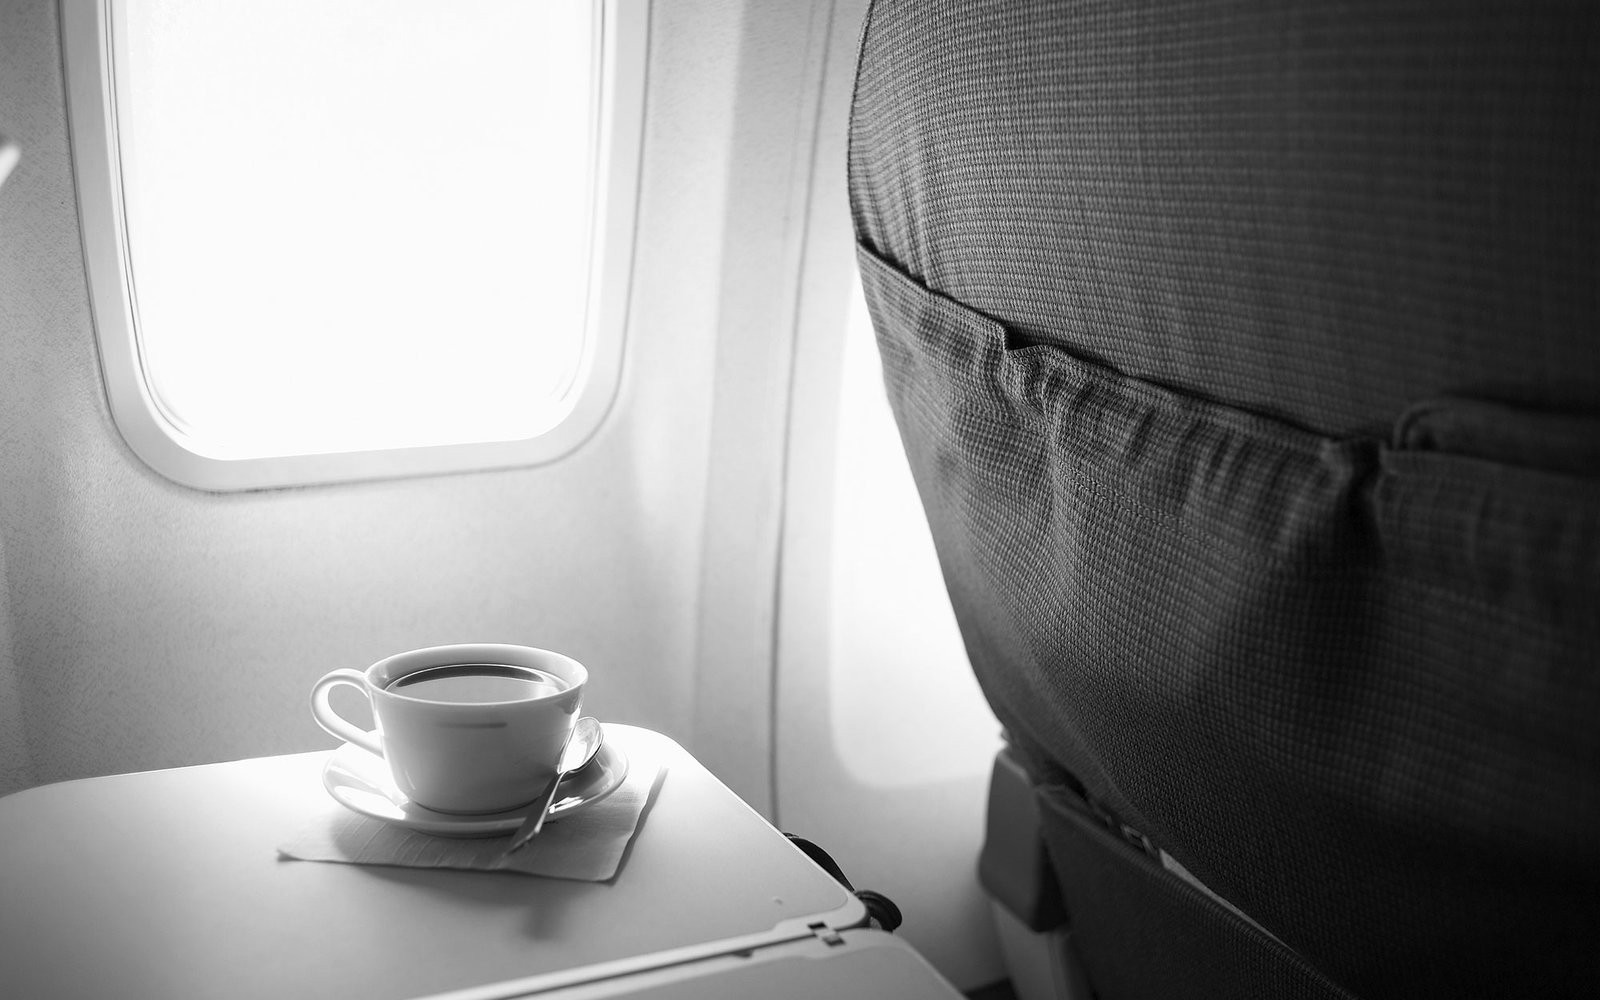 The airline compensates the damages caused from the overturning of a glass of hot coffee